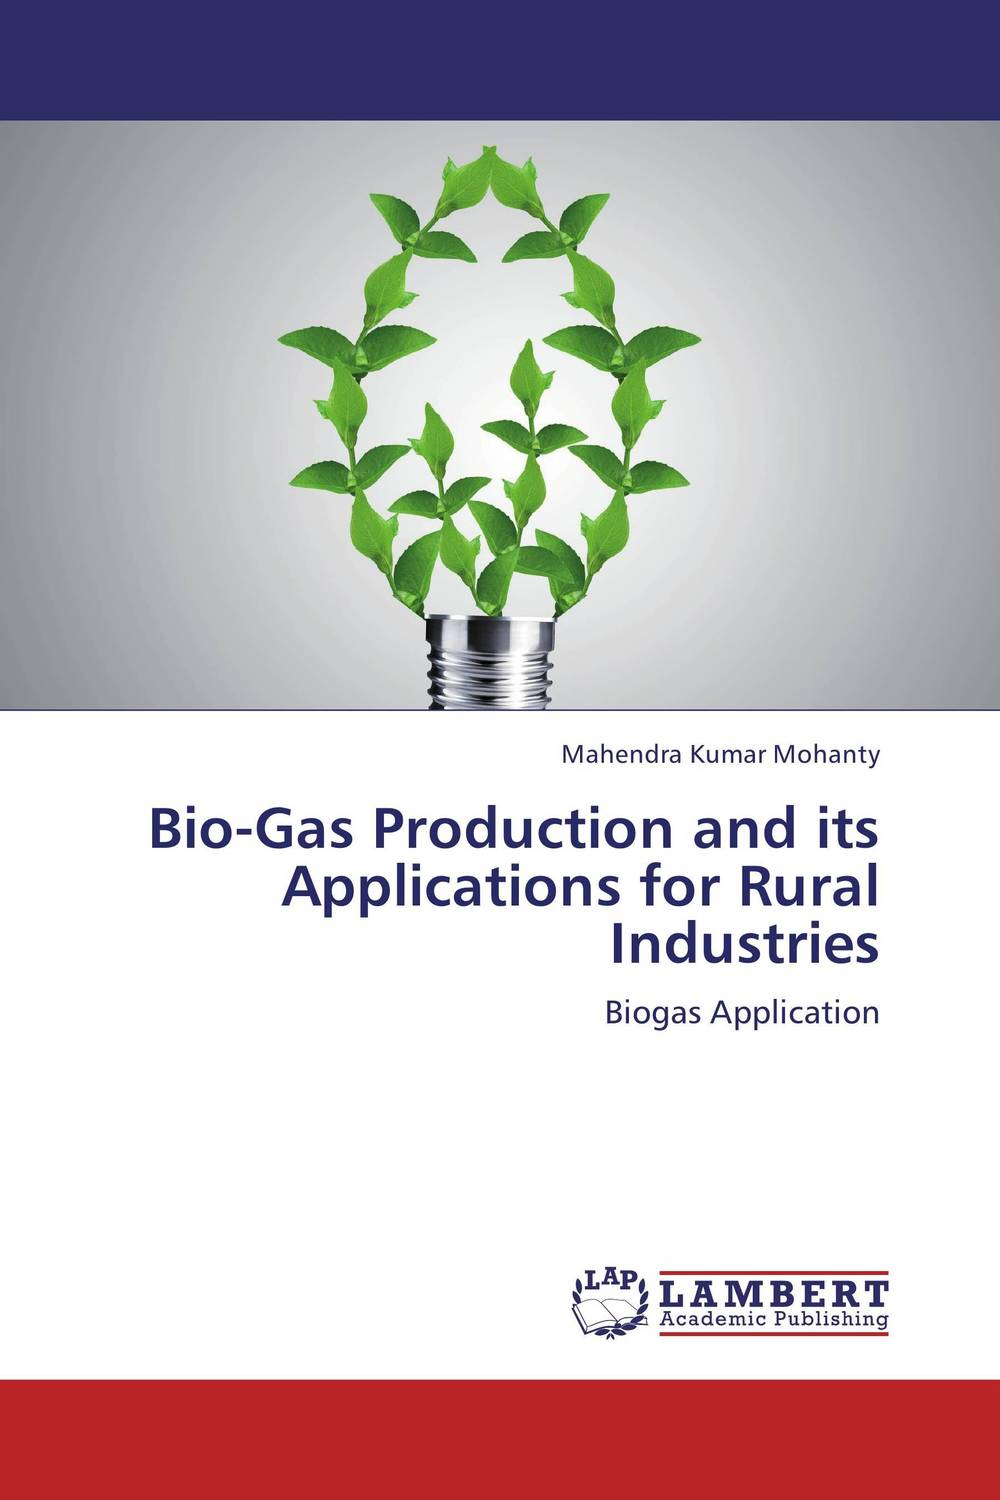 Bio-Gas Production and its Applications for  Rural Industries heba awad abd alrazak and luma naji mohammed tawfiq on initial value problems and its applications